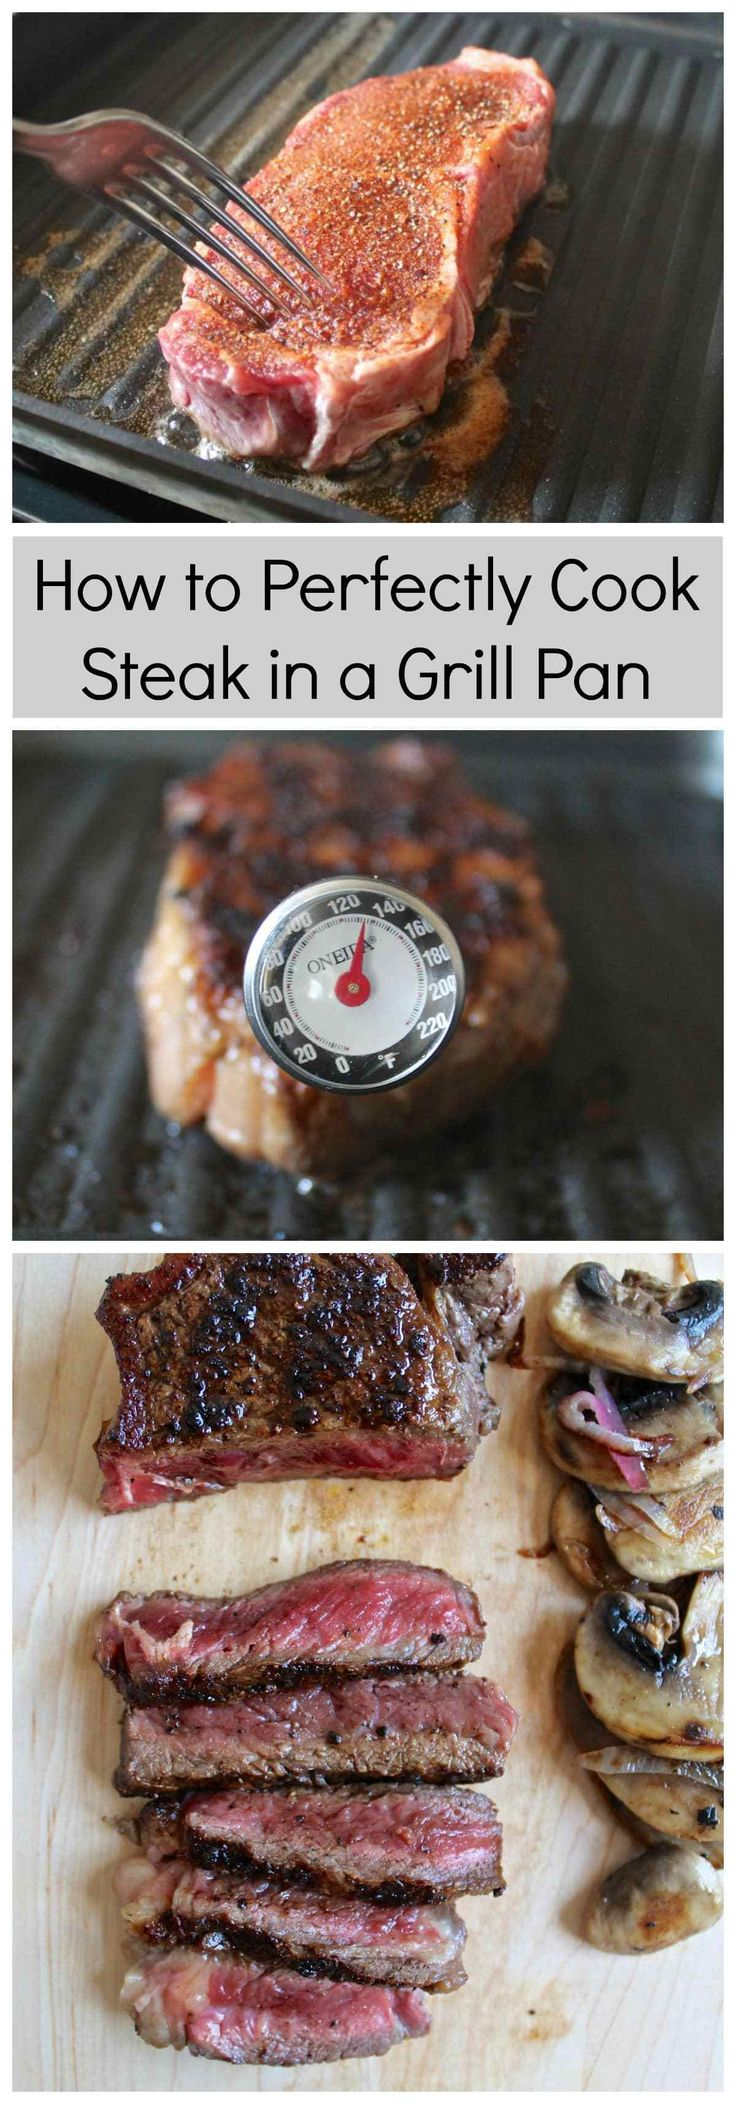 Step by step photos and instructions showing how to make perfectly cooked steak in a grill pan. It is easier than you might think!